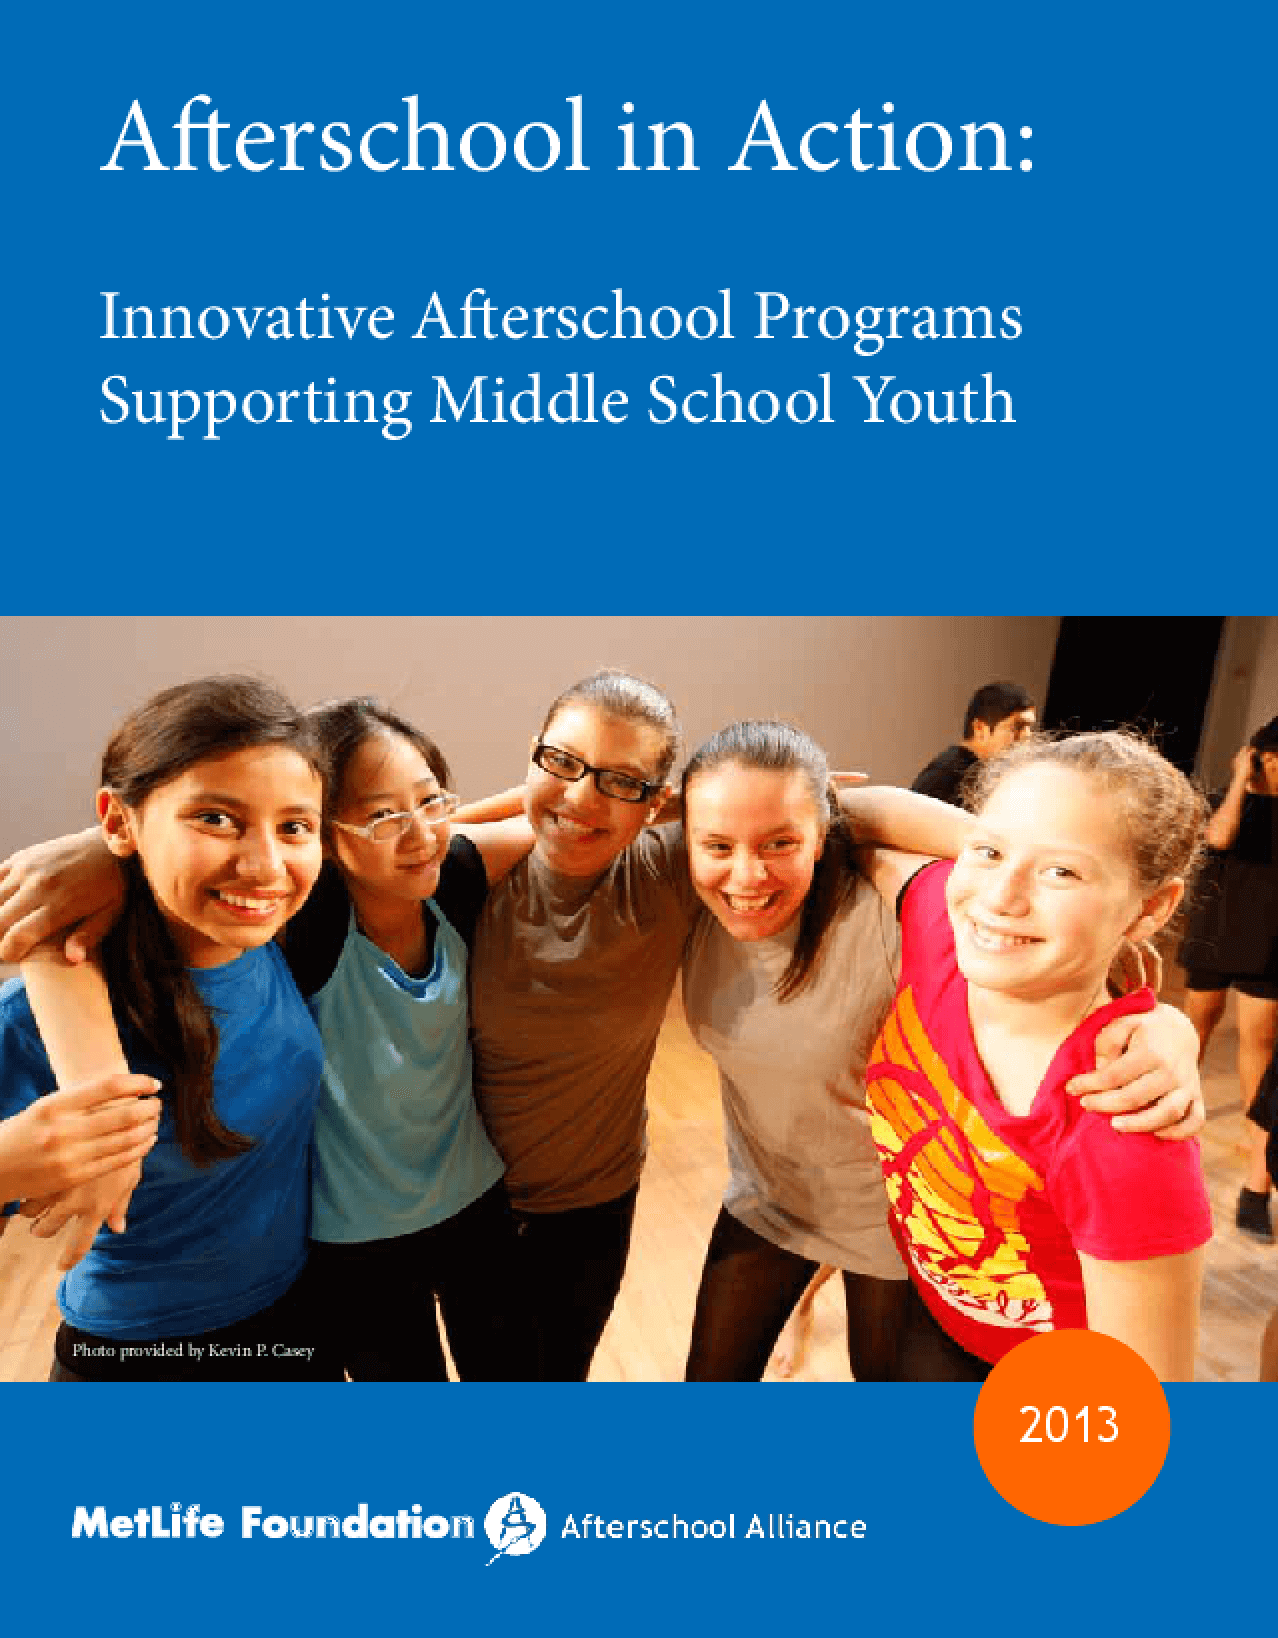 Afterschool in Action: Innovative Afterschool Programs Supporting Middle School Youth